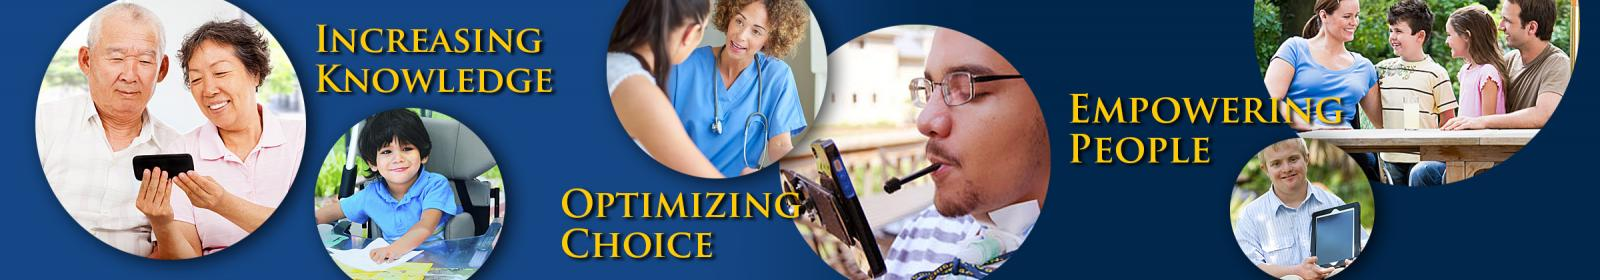 Collaboratory for Technology, Health, and Independence Banner Image